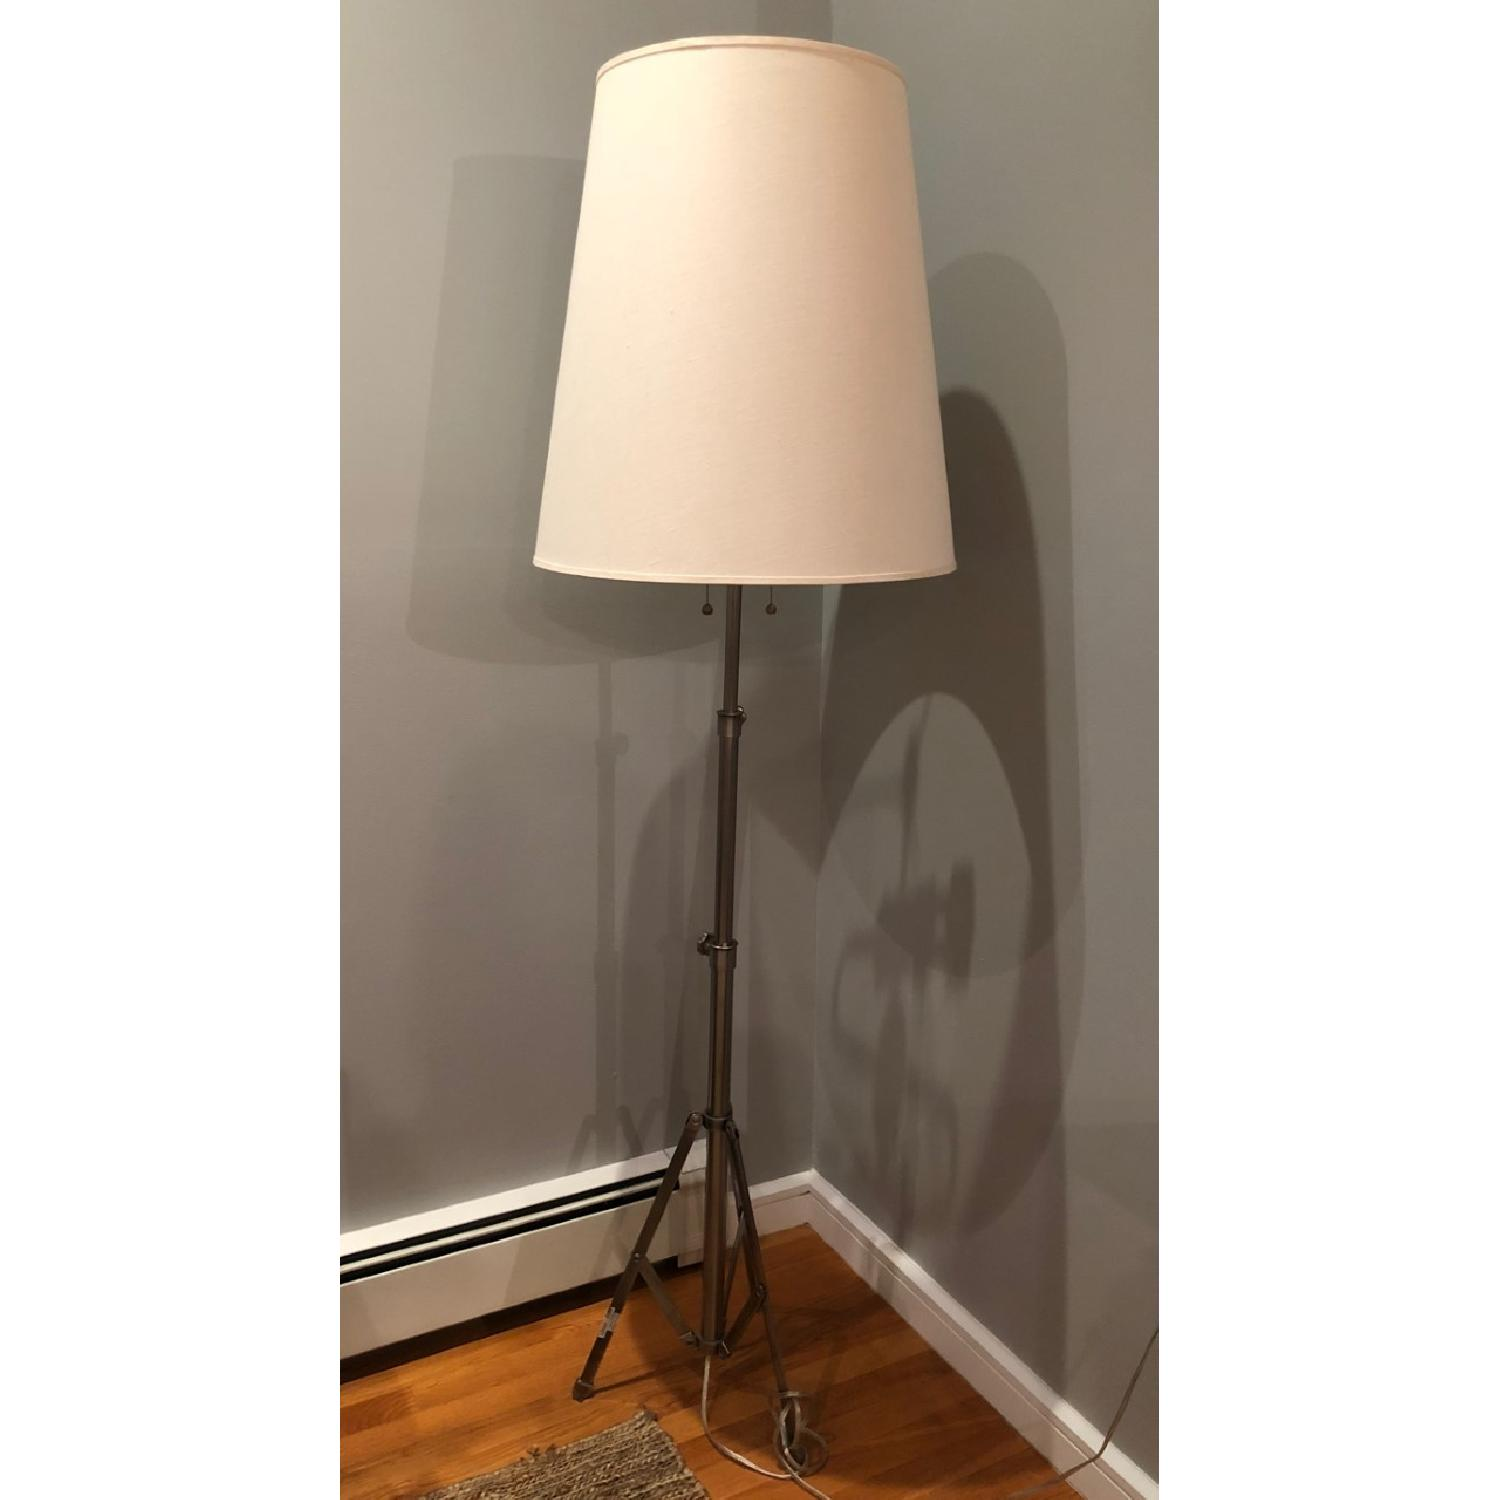 Pottery Barn Tripod Floor Lamp-1